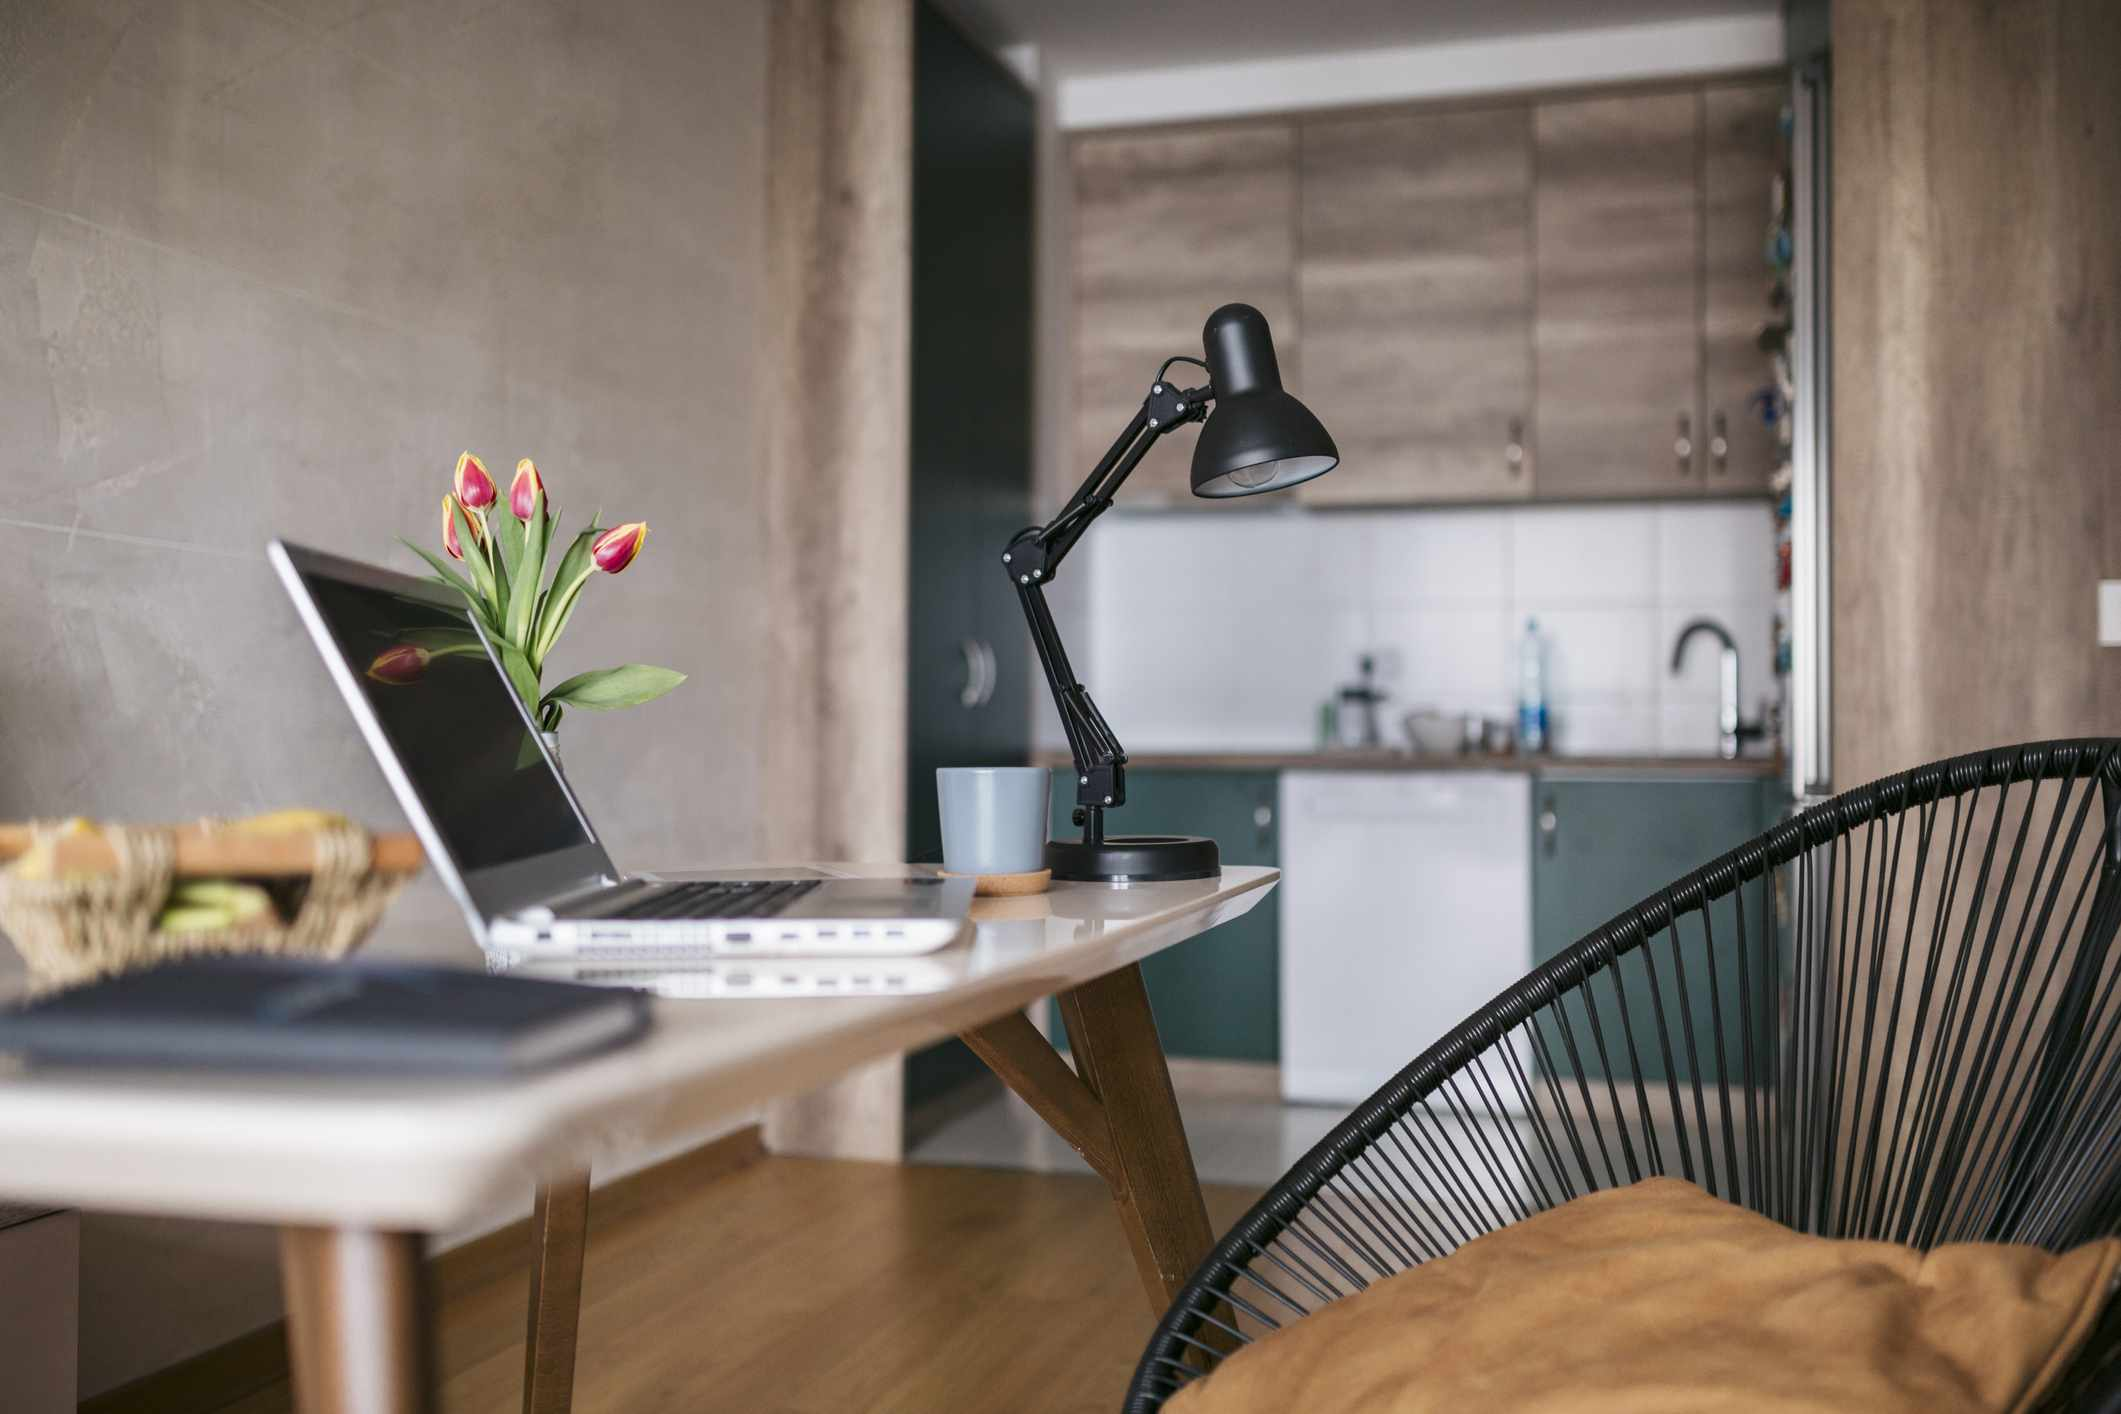 home workspace set up with brown and black colors